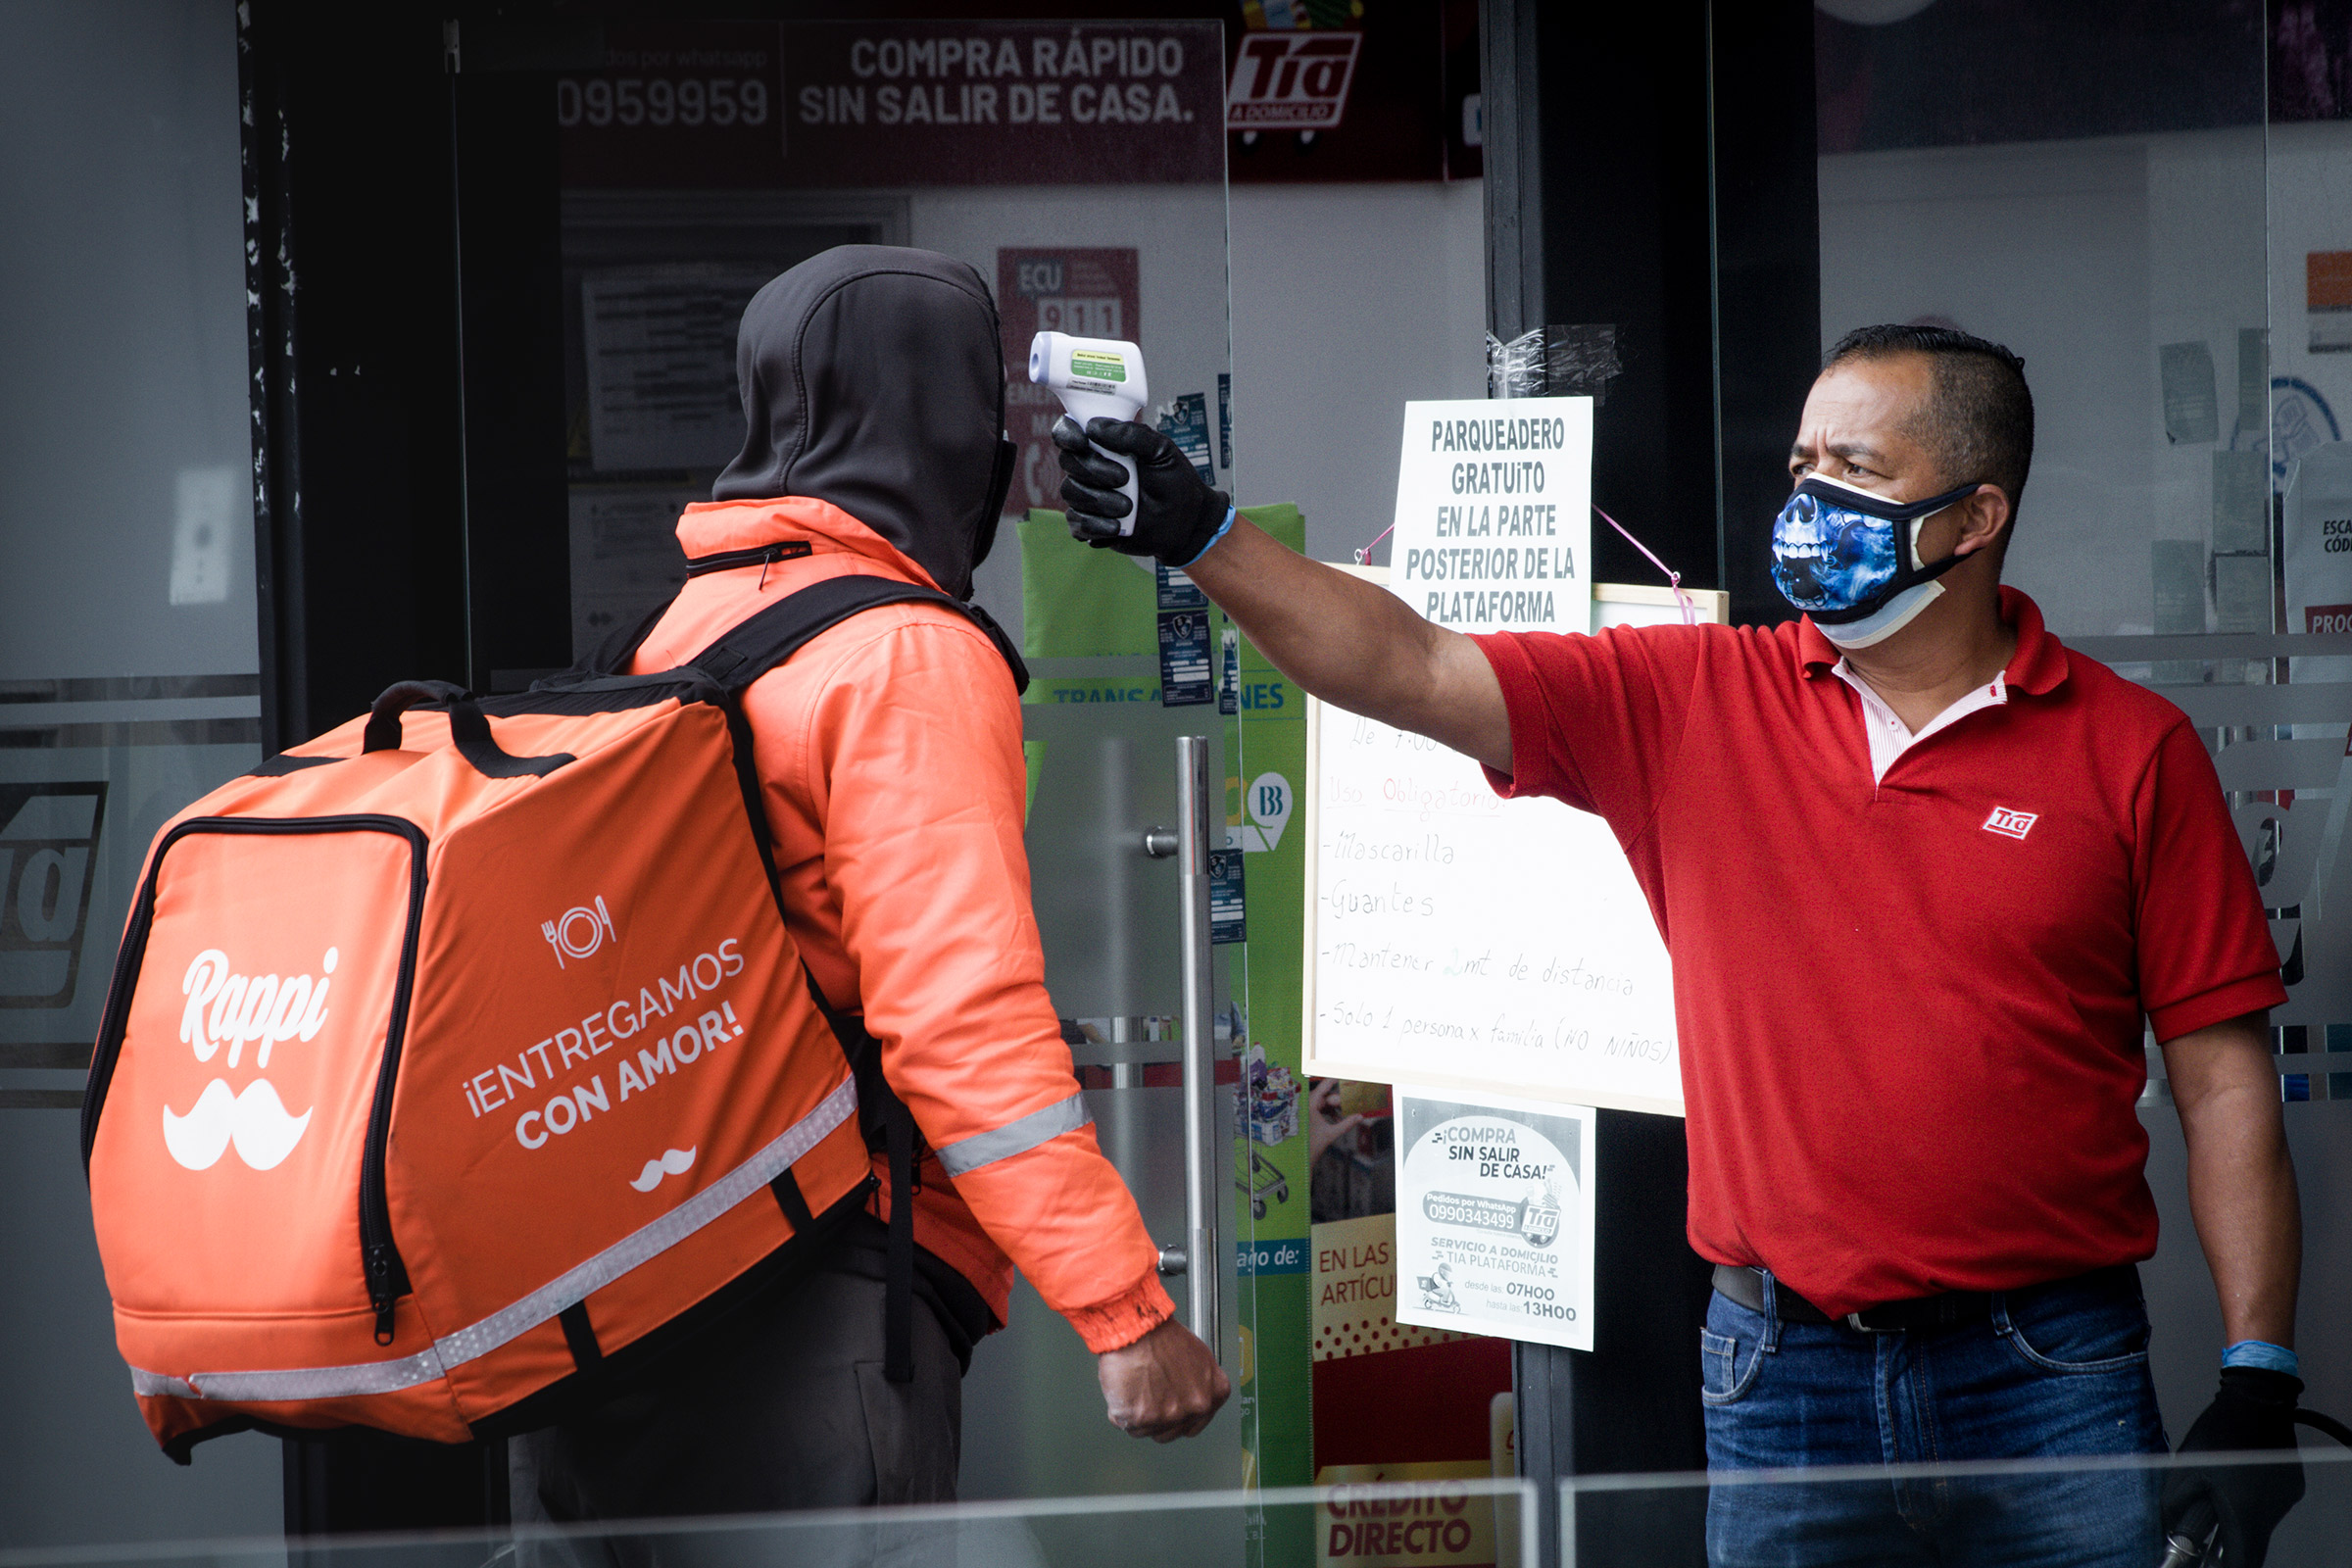 A guard at a store checks the temperature of a delivery driver in Quito, Ecuador, during the government lockdown to prevent the spread of COVID-19.